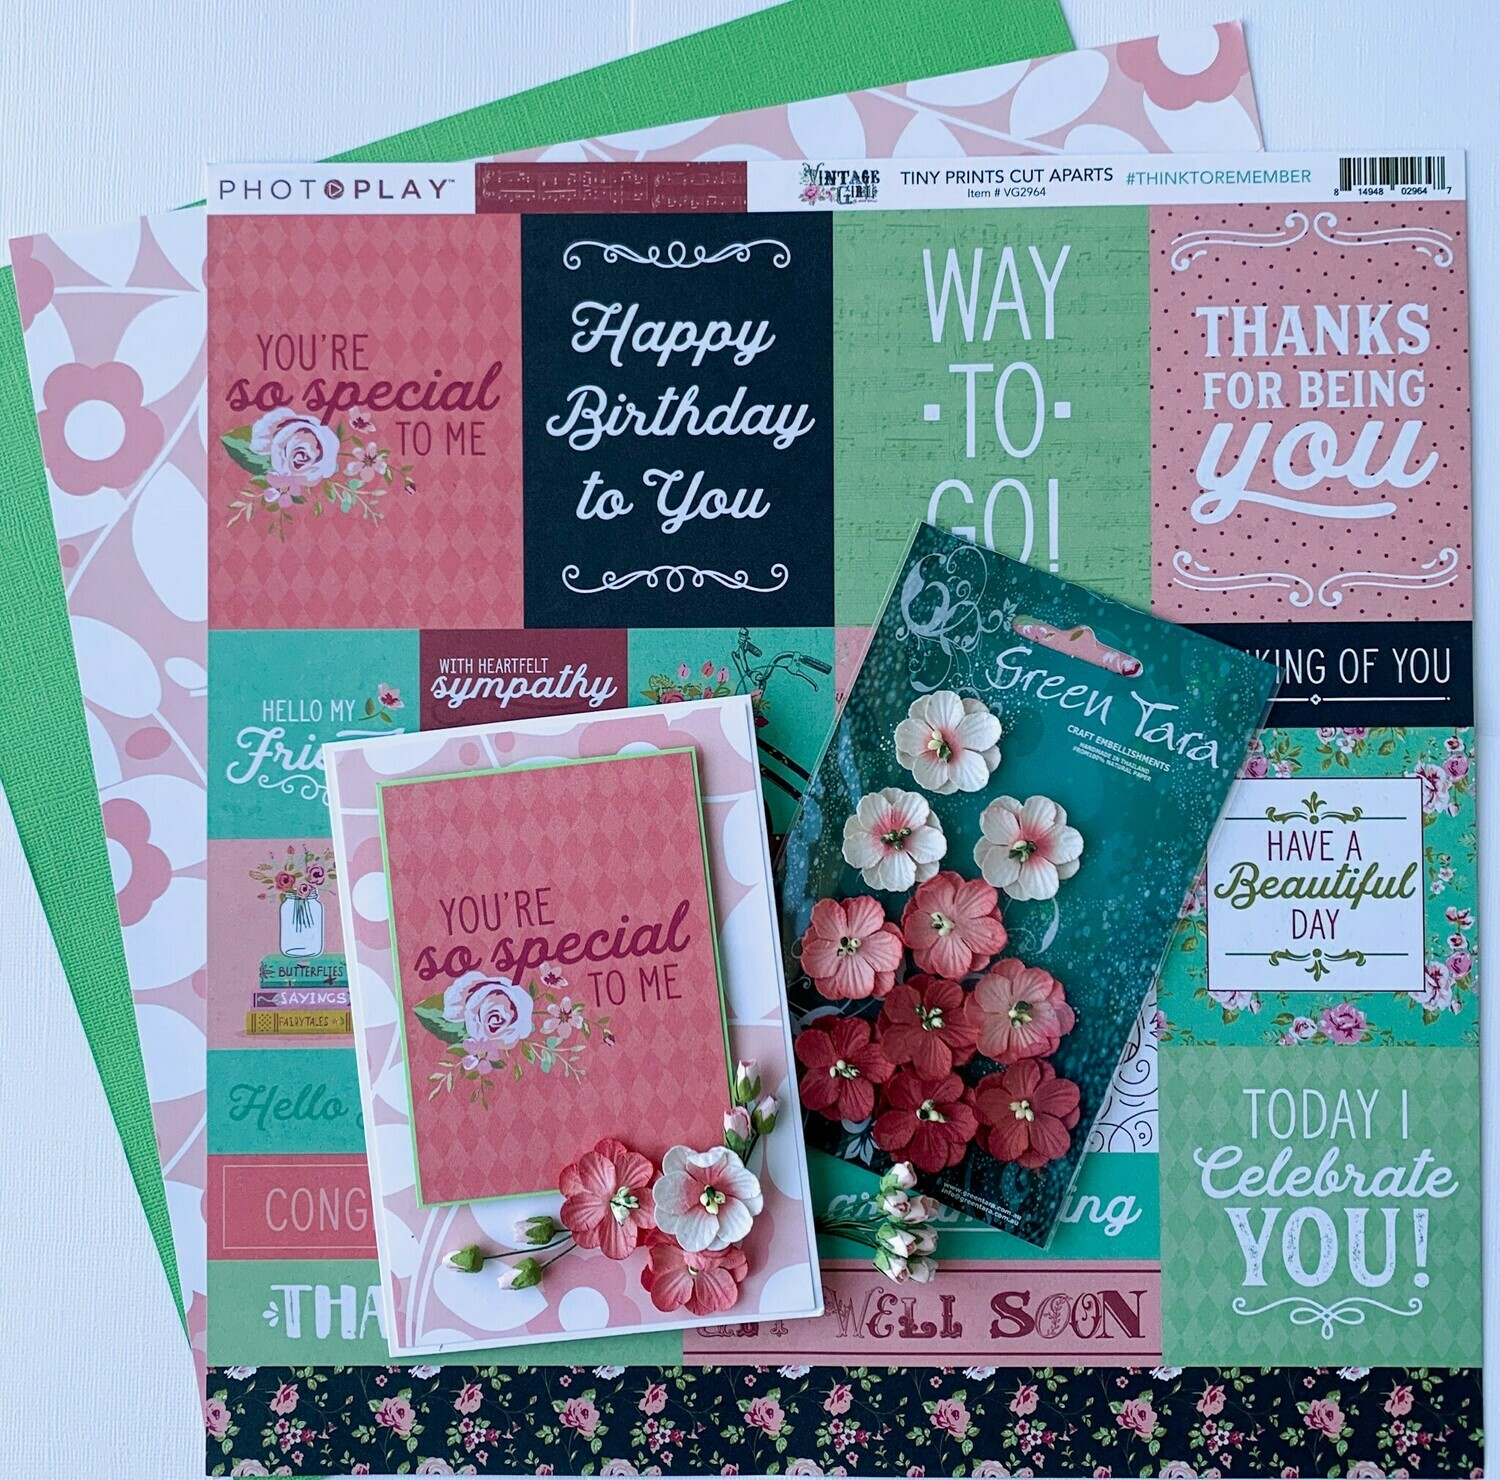 You're So Special to Me - Cardmaking Kit